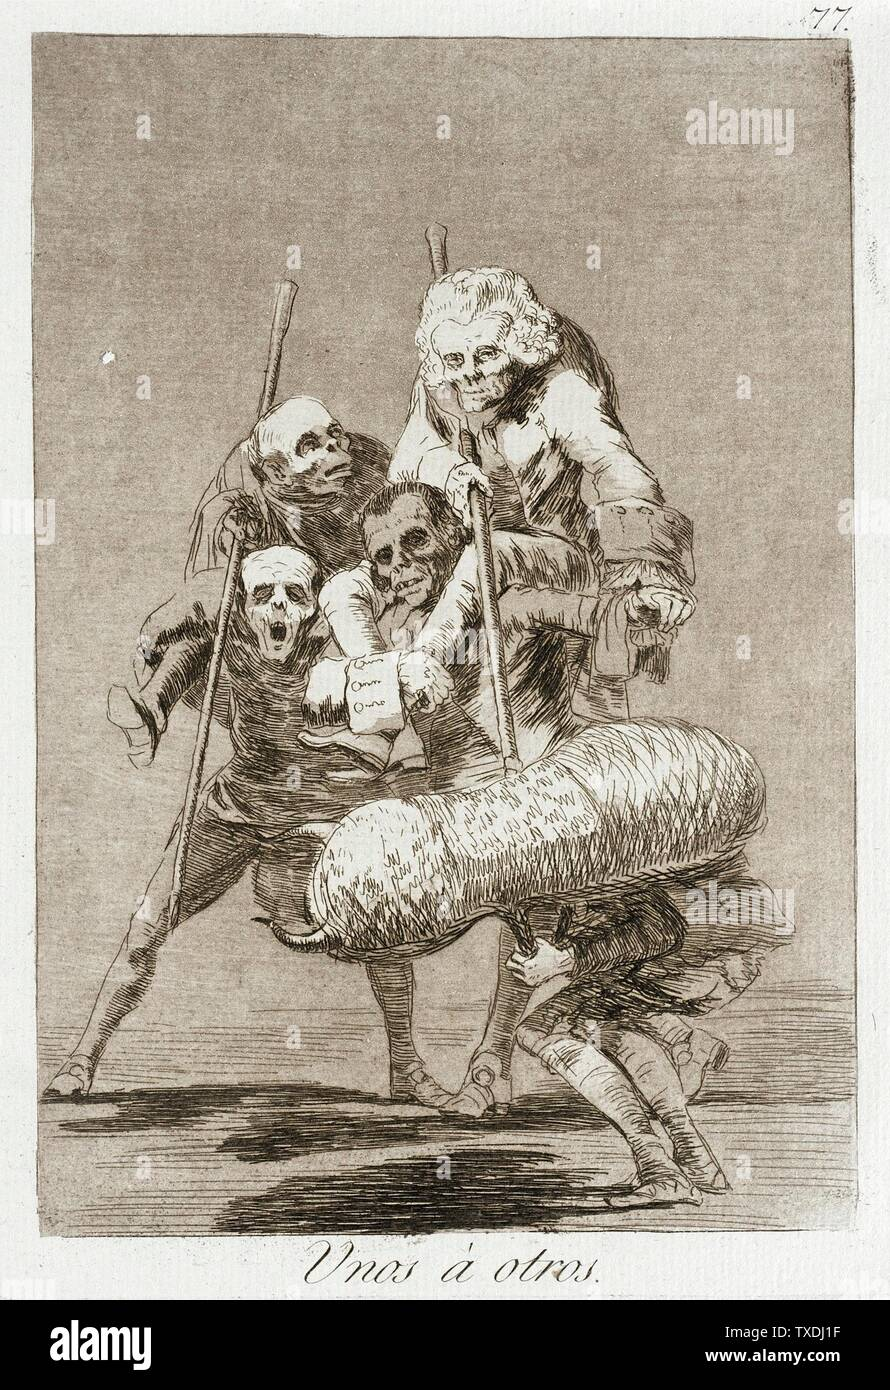 'What one does to another; English:  Spain, 1799 Alternate Title: Unos á Otros Portfolio: Los Caprichos, plate 77 Prints; etchings Etching, burnished aquatint, drypoint and burin Paul Rodman Mabury Trust Fund (63.11.77) Prints and Drawings; 1799date QS:P571,+1799-00-00T00:00:00Z/9; ' - Stock Image